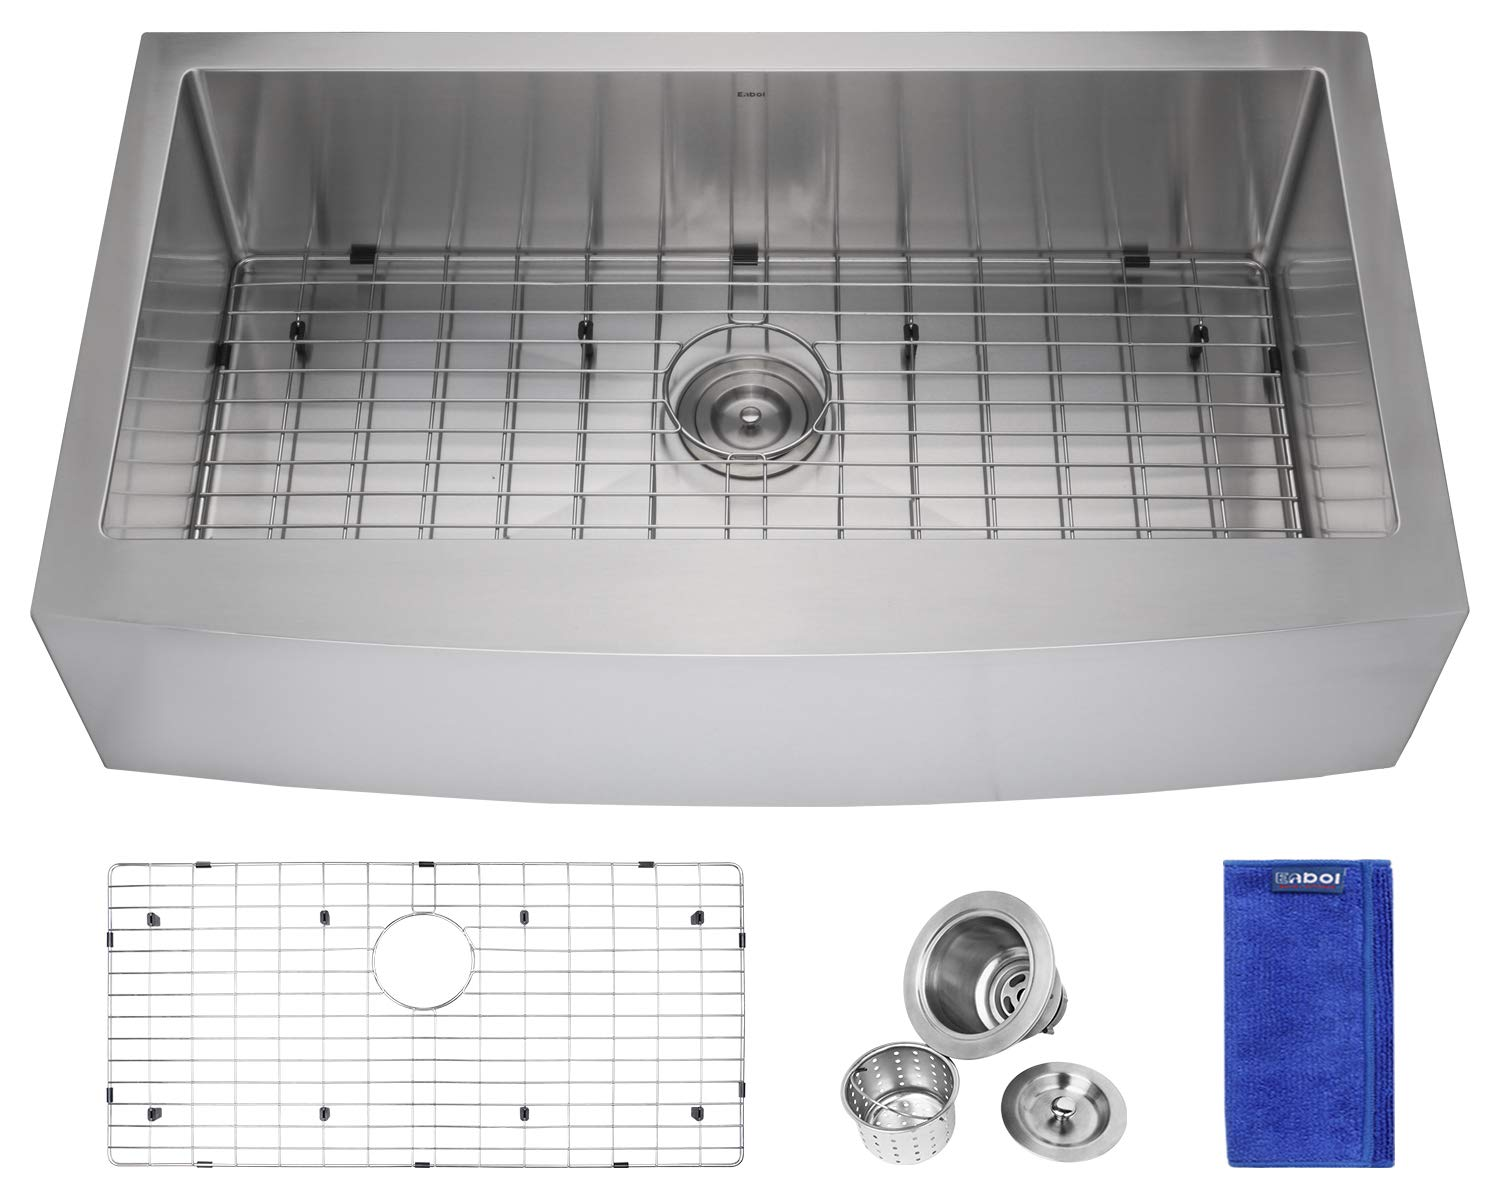 Enbol EAS3620 36 Inch Arc Apron Front Farmhouse Undermount Single Bowl Stainless Steel Kitchen Sink with Protective Bottom Grid and Strainer, 10 Inch Extra Deep, Easy Clean Rounded Corner